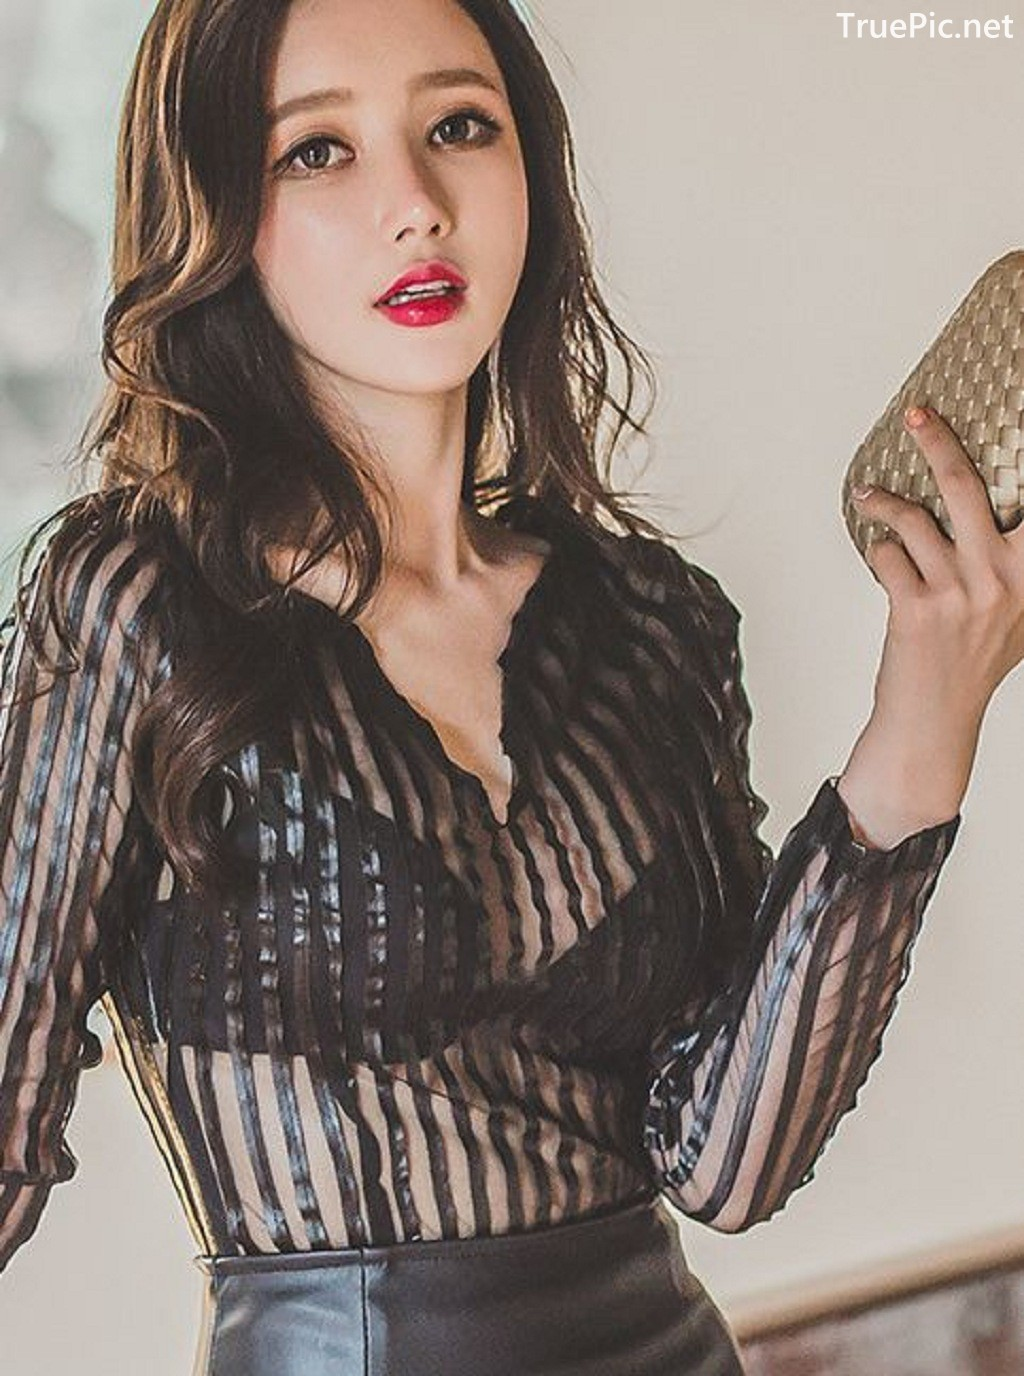 Image-Lee-Yeon-Jeong-Indoor-Photoshoot-Collection-Korean-fashion-model-Part-11-TruePic.net- Picture-7